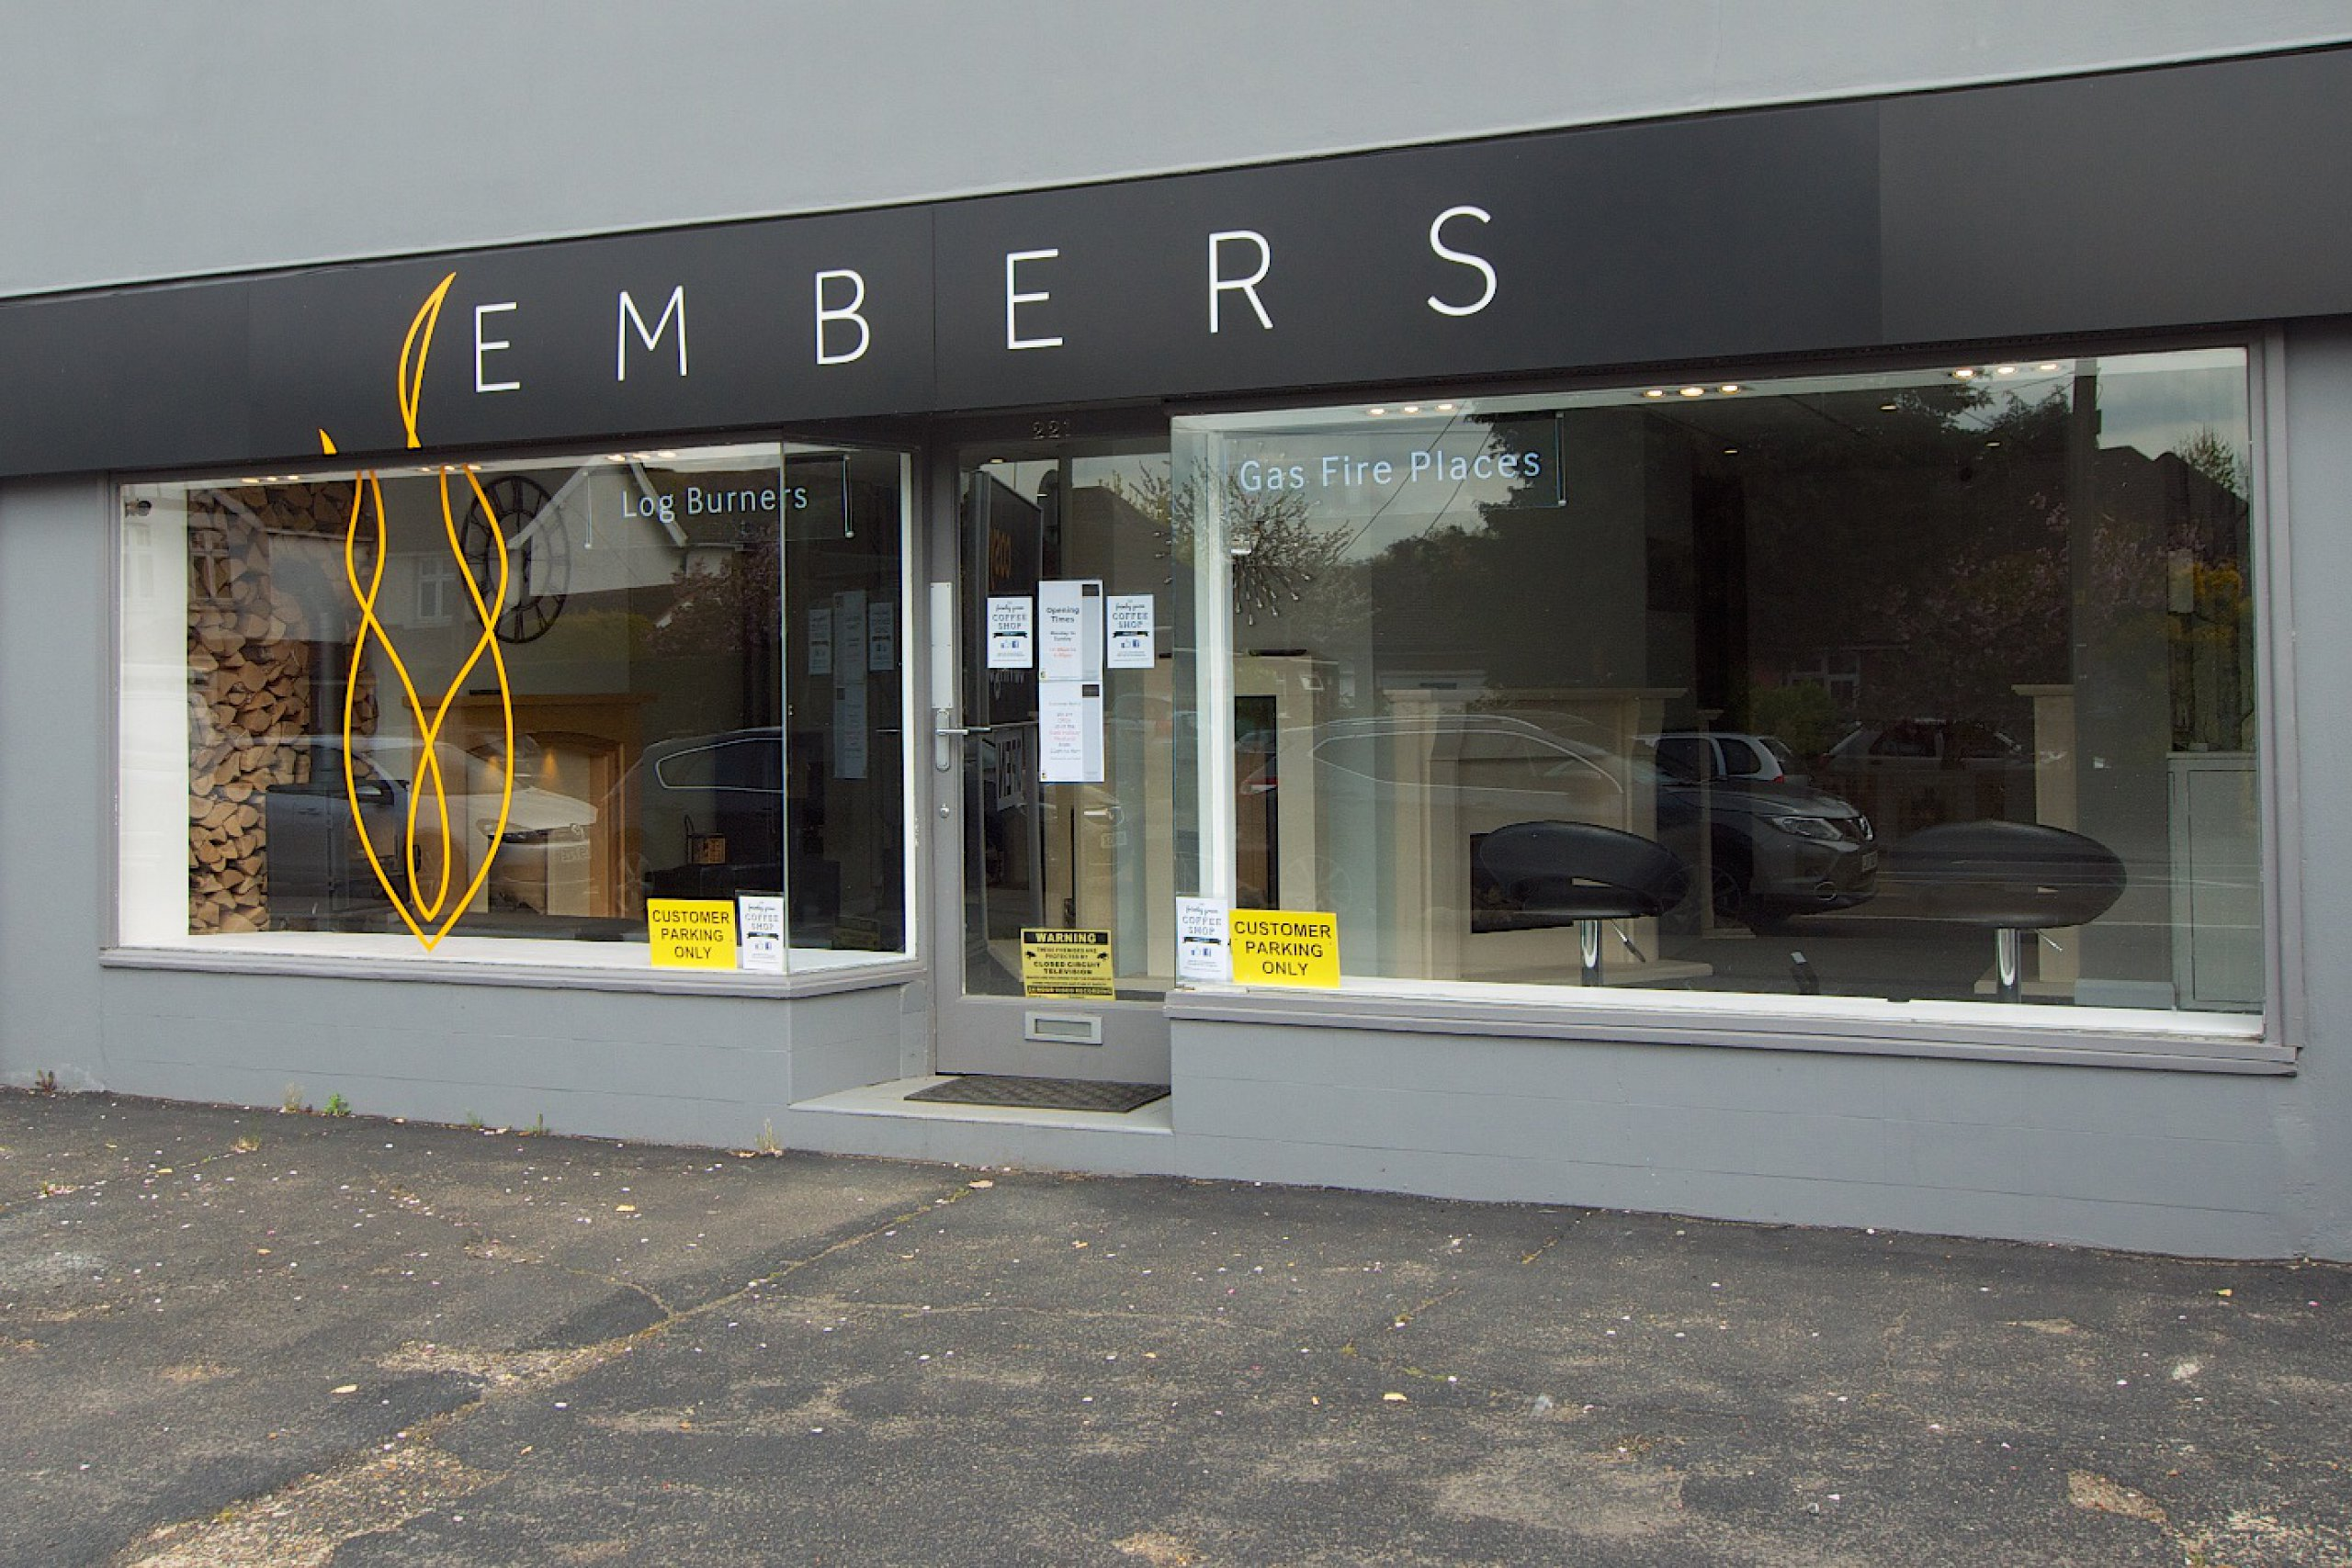 Embers Fireplace showroom in Frimley Green, Camberley, Surrey